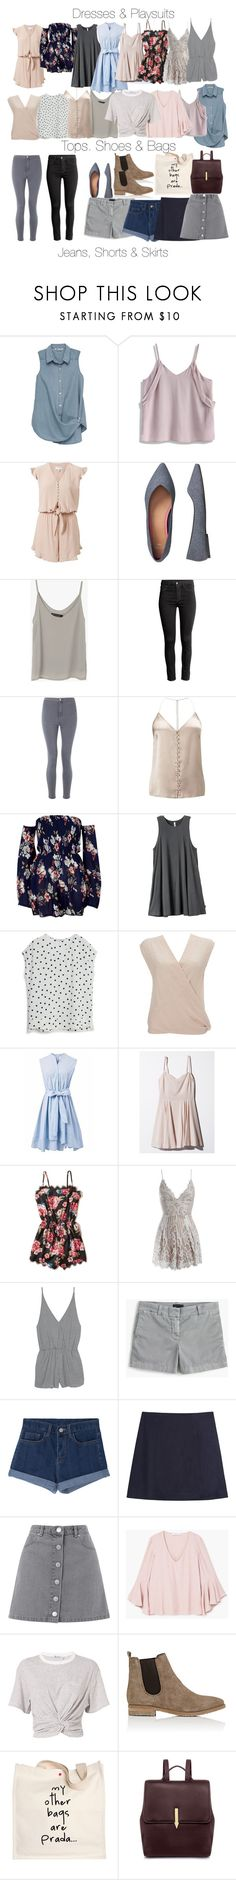 """""""Cami Inspired Spring/Summer Essentials"""" by fangsandfashion ❤ liked on Polyvore featuring Bobeau, Chicwish, Witchery, Gap, H&M, Miss Selfridge, River Island, RVCA, MANGO and Wallis"""